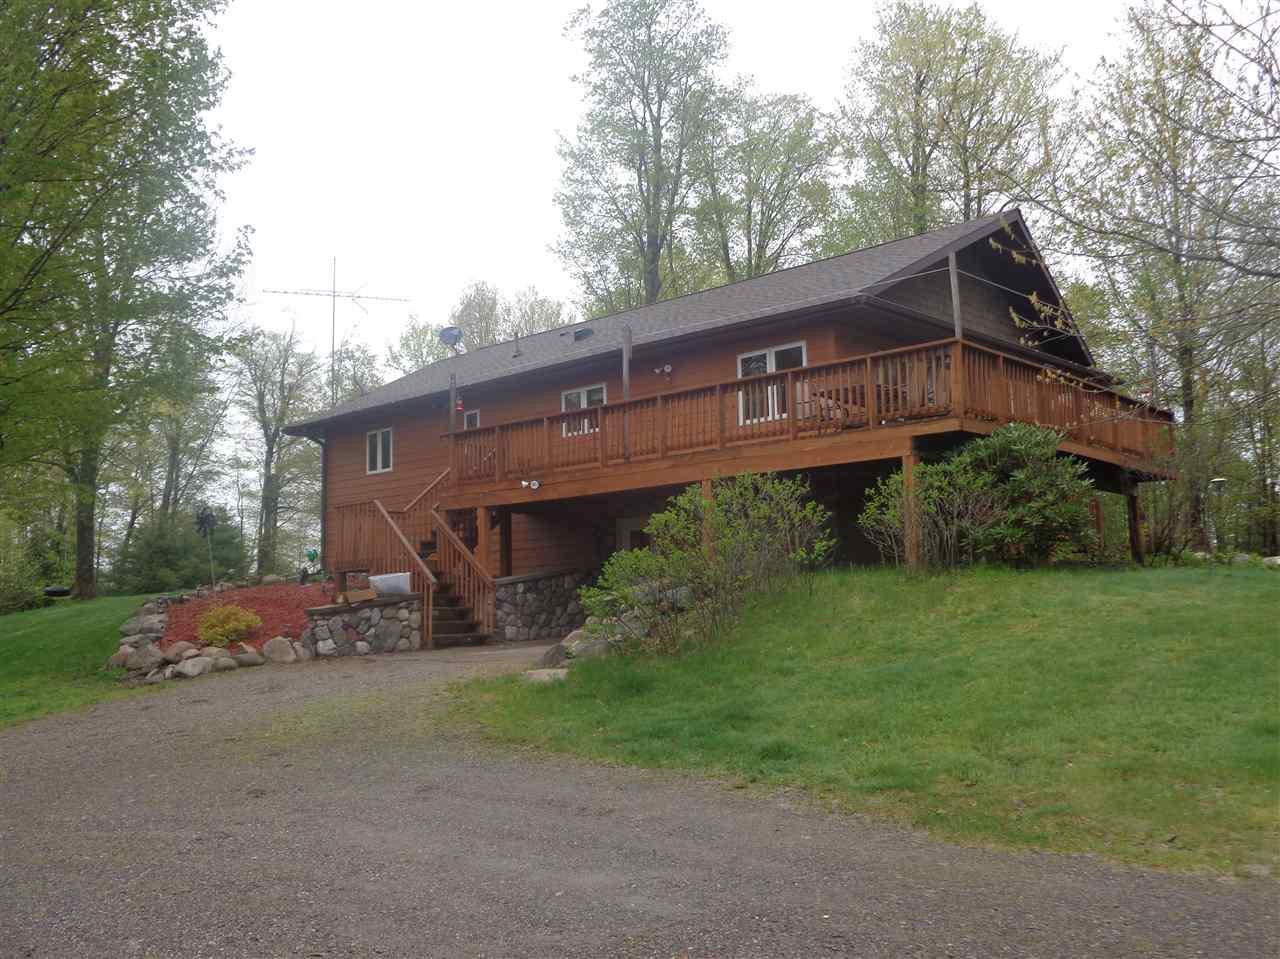 Lakefront 4 bed, 3 bath home with +/-665 ft. of frontage on Matt Ochs Lake and +/-6.67 secluded wooded acres. Oak kitchen with breakfast bar, dining with patio door, wrap around deck with water views and living room with tongue and groove vaulted ceilings. Master bedroom with full bath. Walk out basement with family room, gas fireplace, bedroom, 3/4 bath, storage room and laundry/utility room. Forced air lp furnace, central air, 100 amp electrical service and maintenance free cement board siding. Horseshoe driveway leading to a 48x42 heated metal shed with 16' ceilings. Drilled well, conventional septic system and beautiful landscaped yard. Gentle slope to lake for easy access for fishing and swimming. Abundant wildlife with trail system through woods. Located close to the National Forest and Mondeaux Flowage. Refrigerator, stove, washer, dryer, basement refrigerator, window treatments, metal shed wood stove, dock, canoe, dog fencing and remaining firewood are included in the sale price.